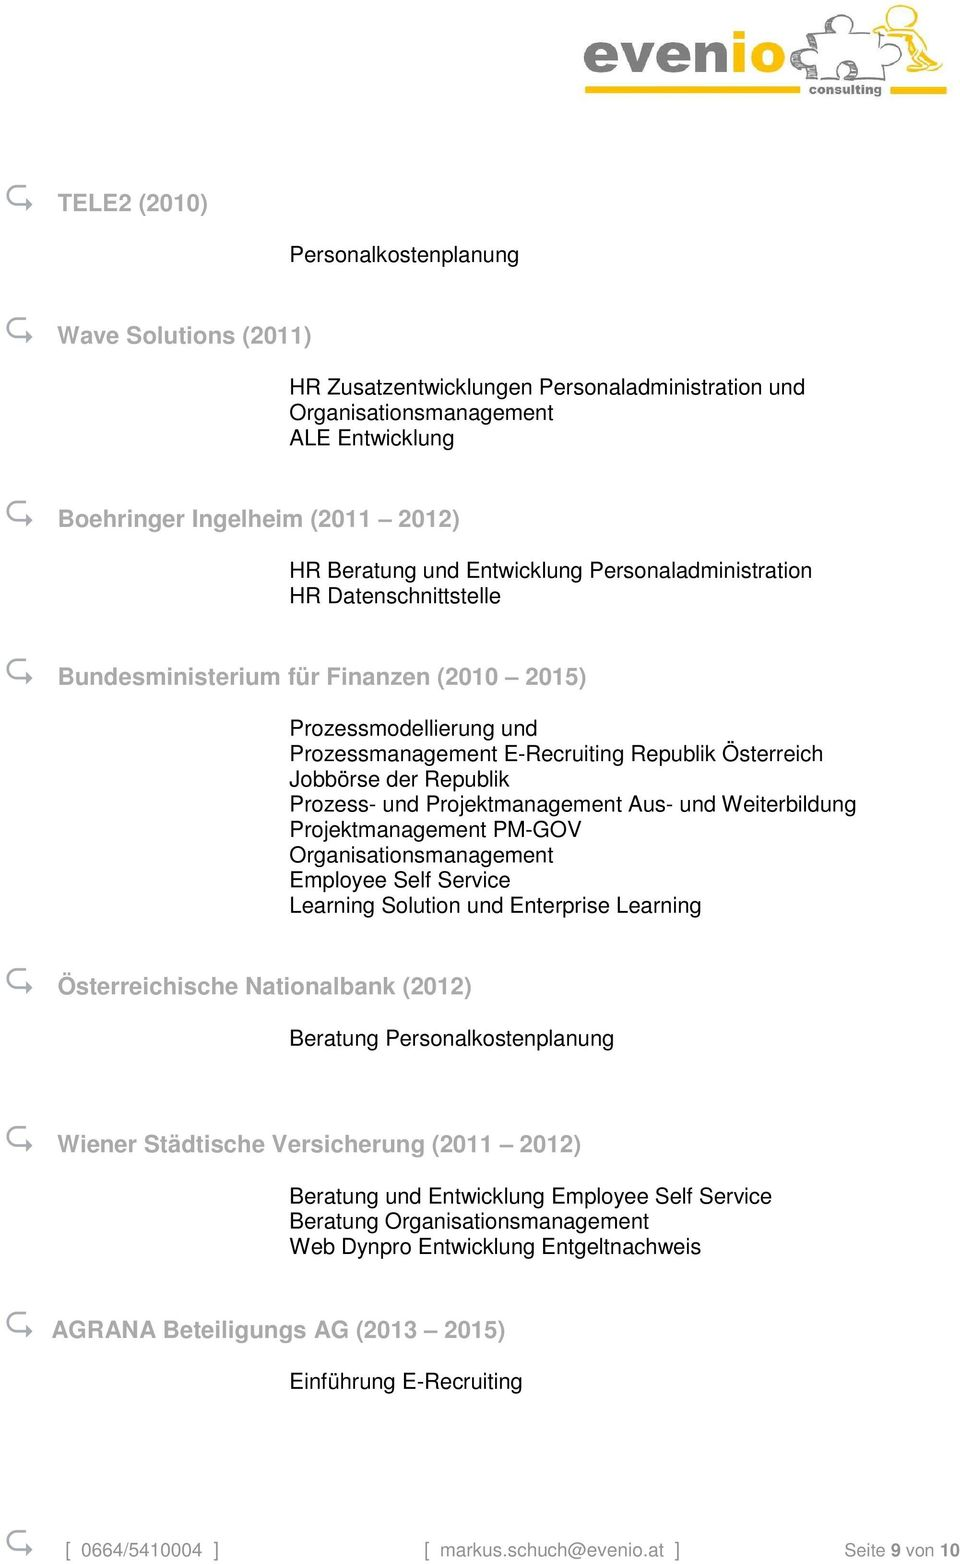 Projektmanagement Aus- und Weiterbildung Projektmanagement PM-GOV Employee Self Service Learning Solution und Enterprise Learning Österreichische Nationalbank (2012) Beratung Personalkostenplanung